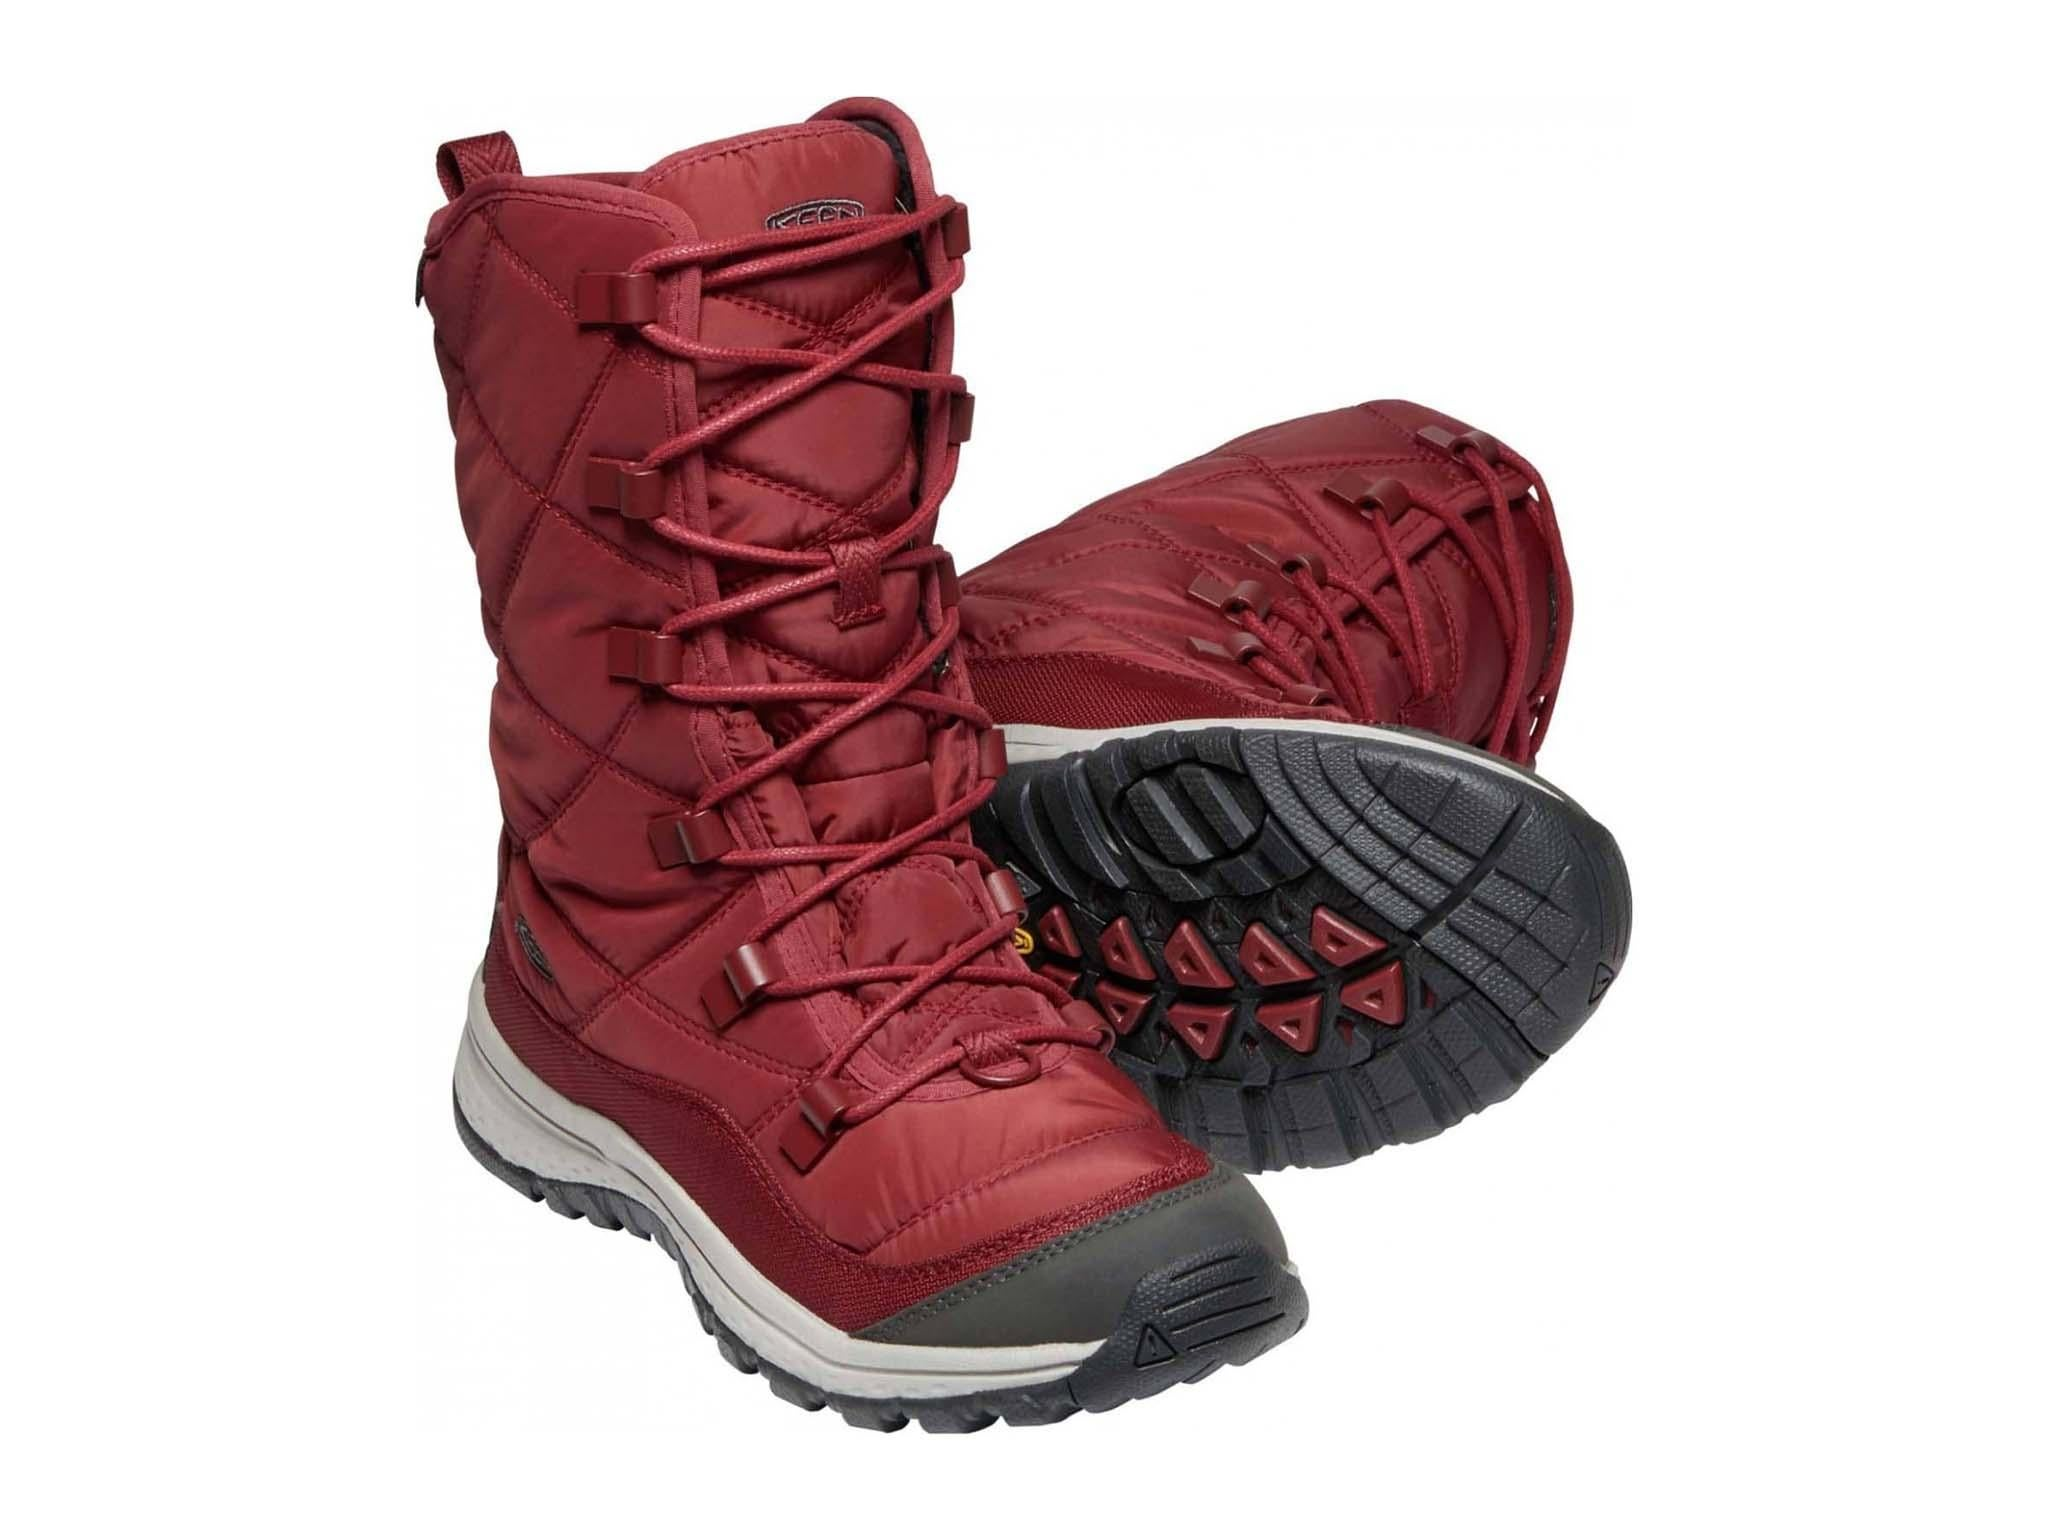 winter boots with laces